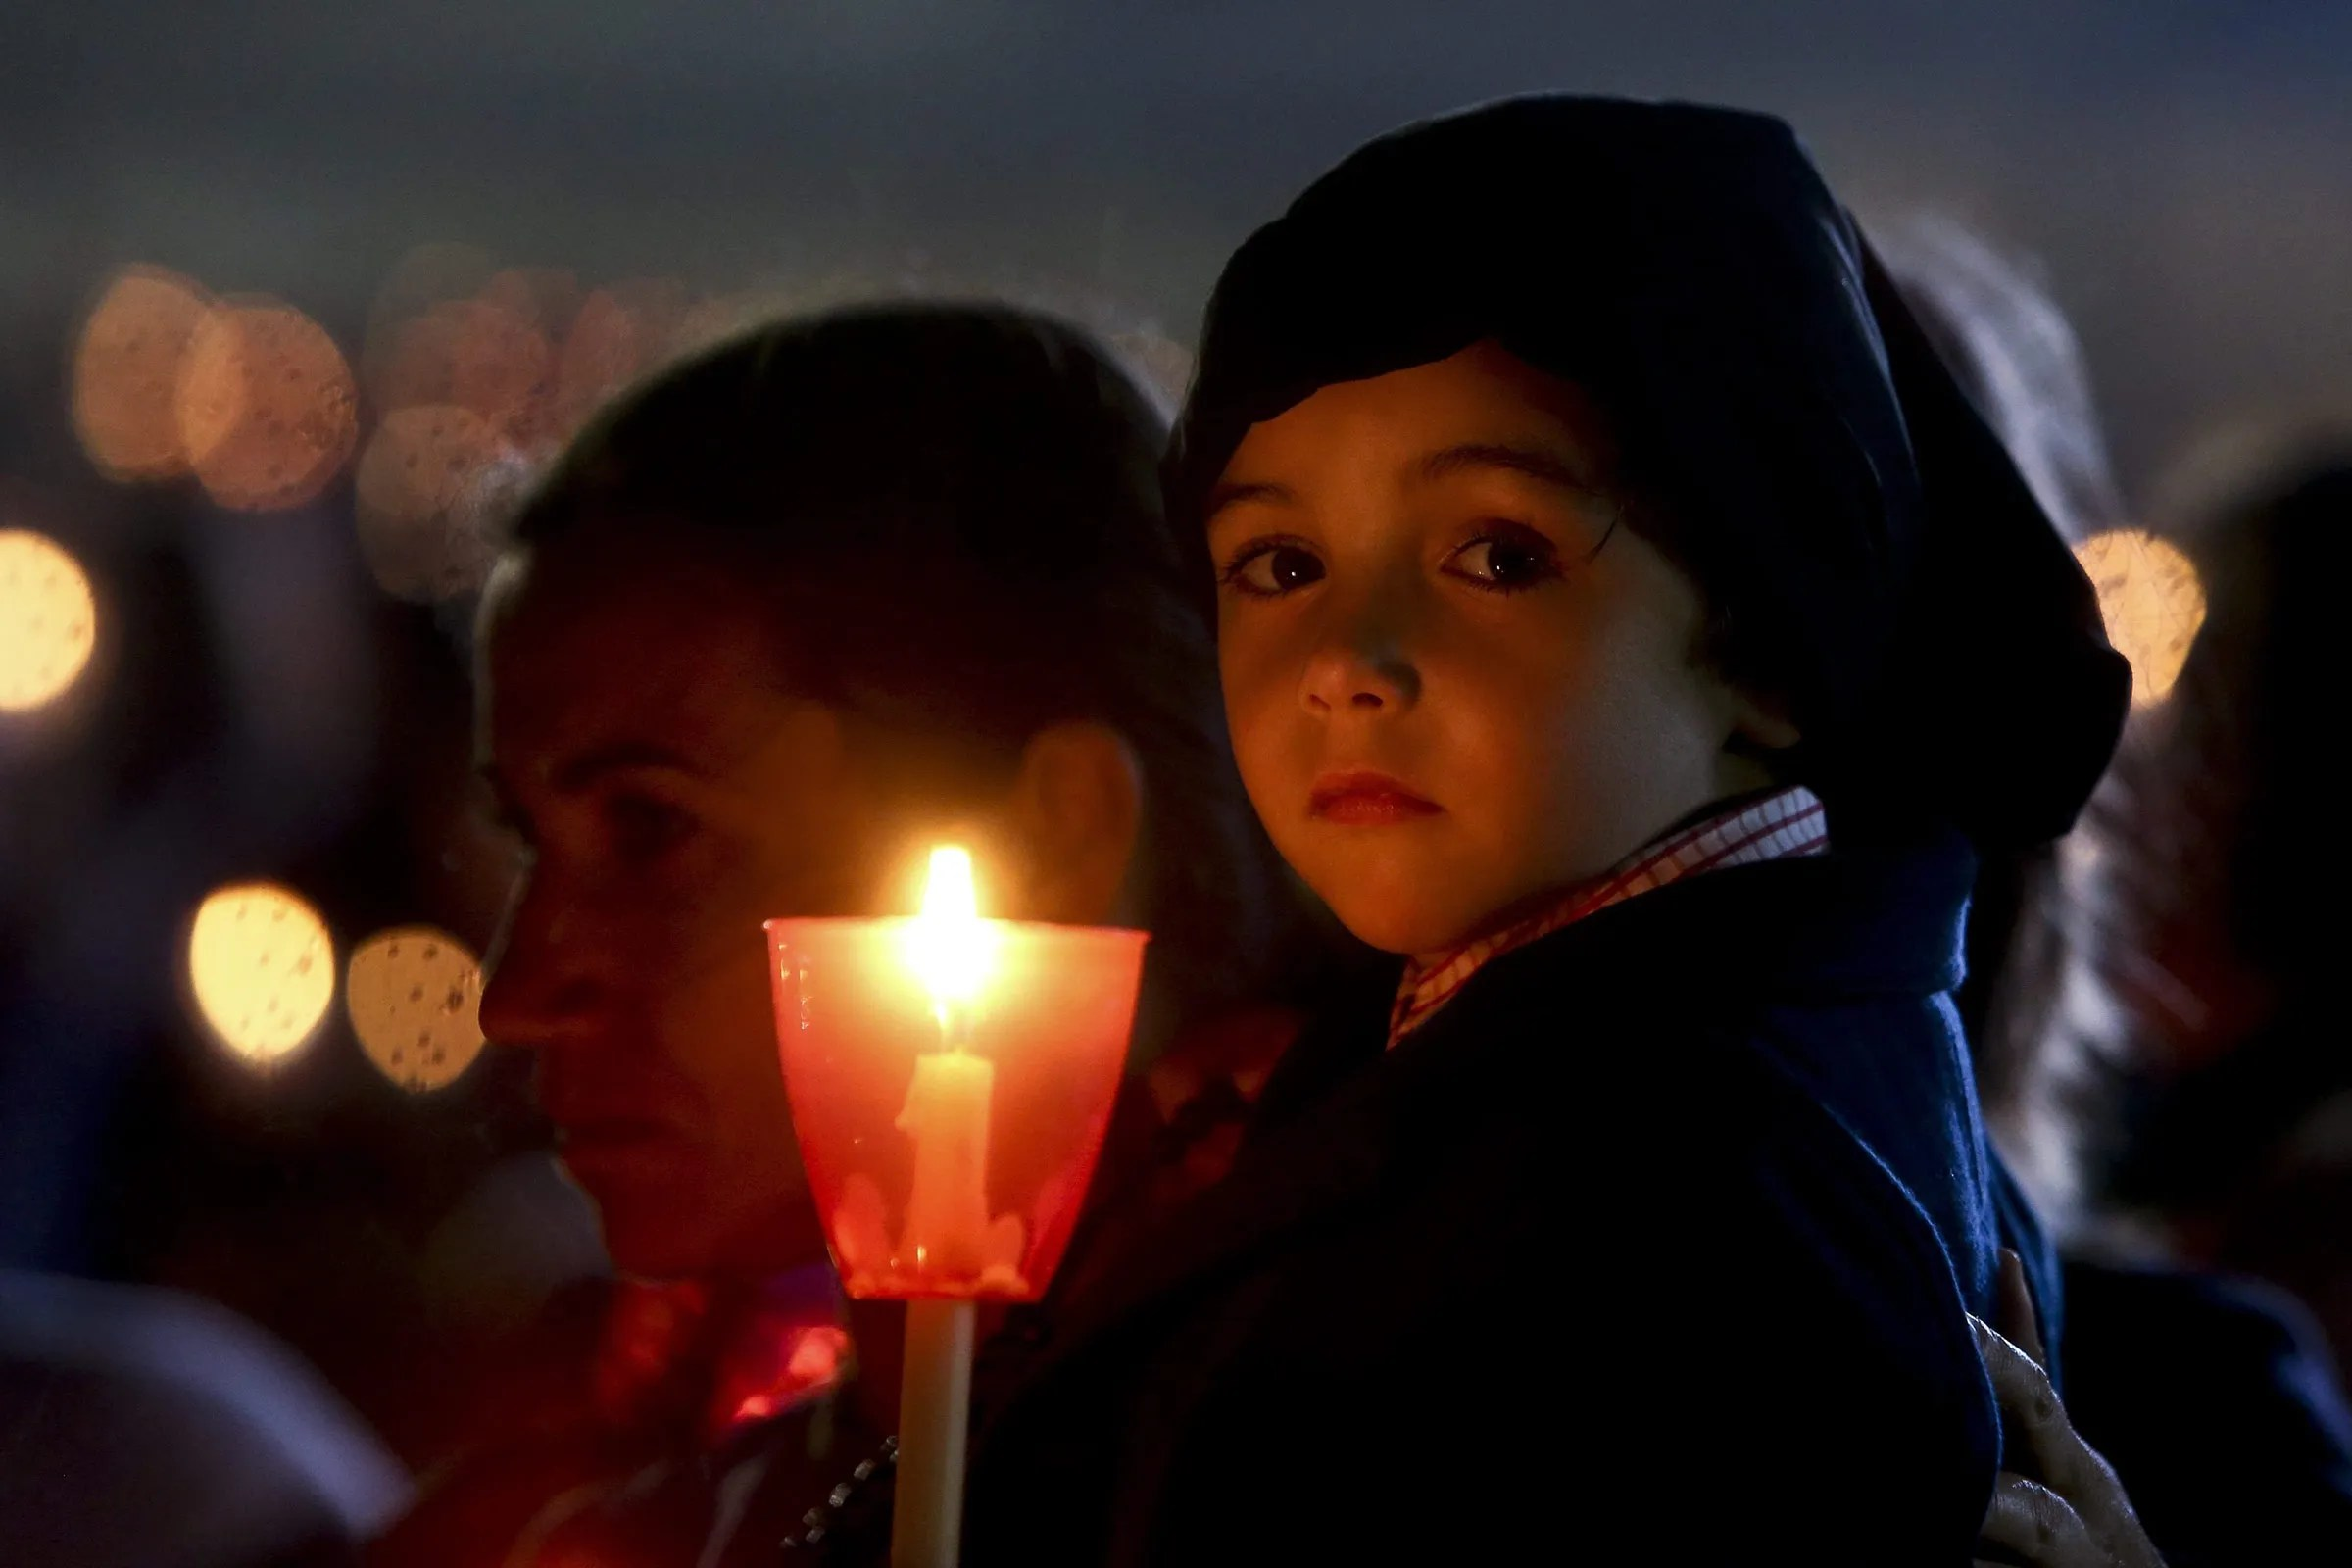 A child holds a candle in the Candles Procession during the annual pilgrimage to Fatima Sanctuary in Fatima, Portugal, May 12, 2015.  (PAULO NOVAIS / EPA)